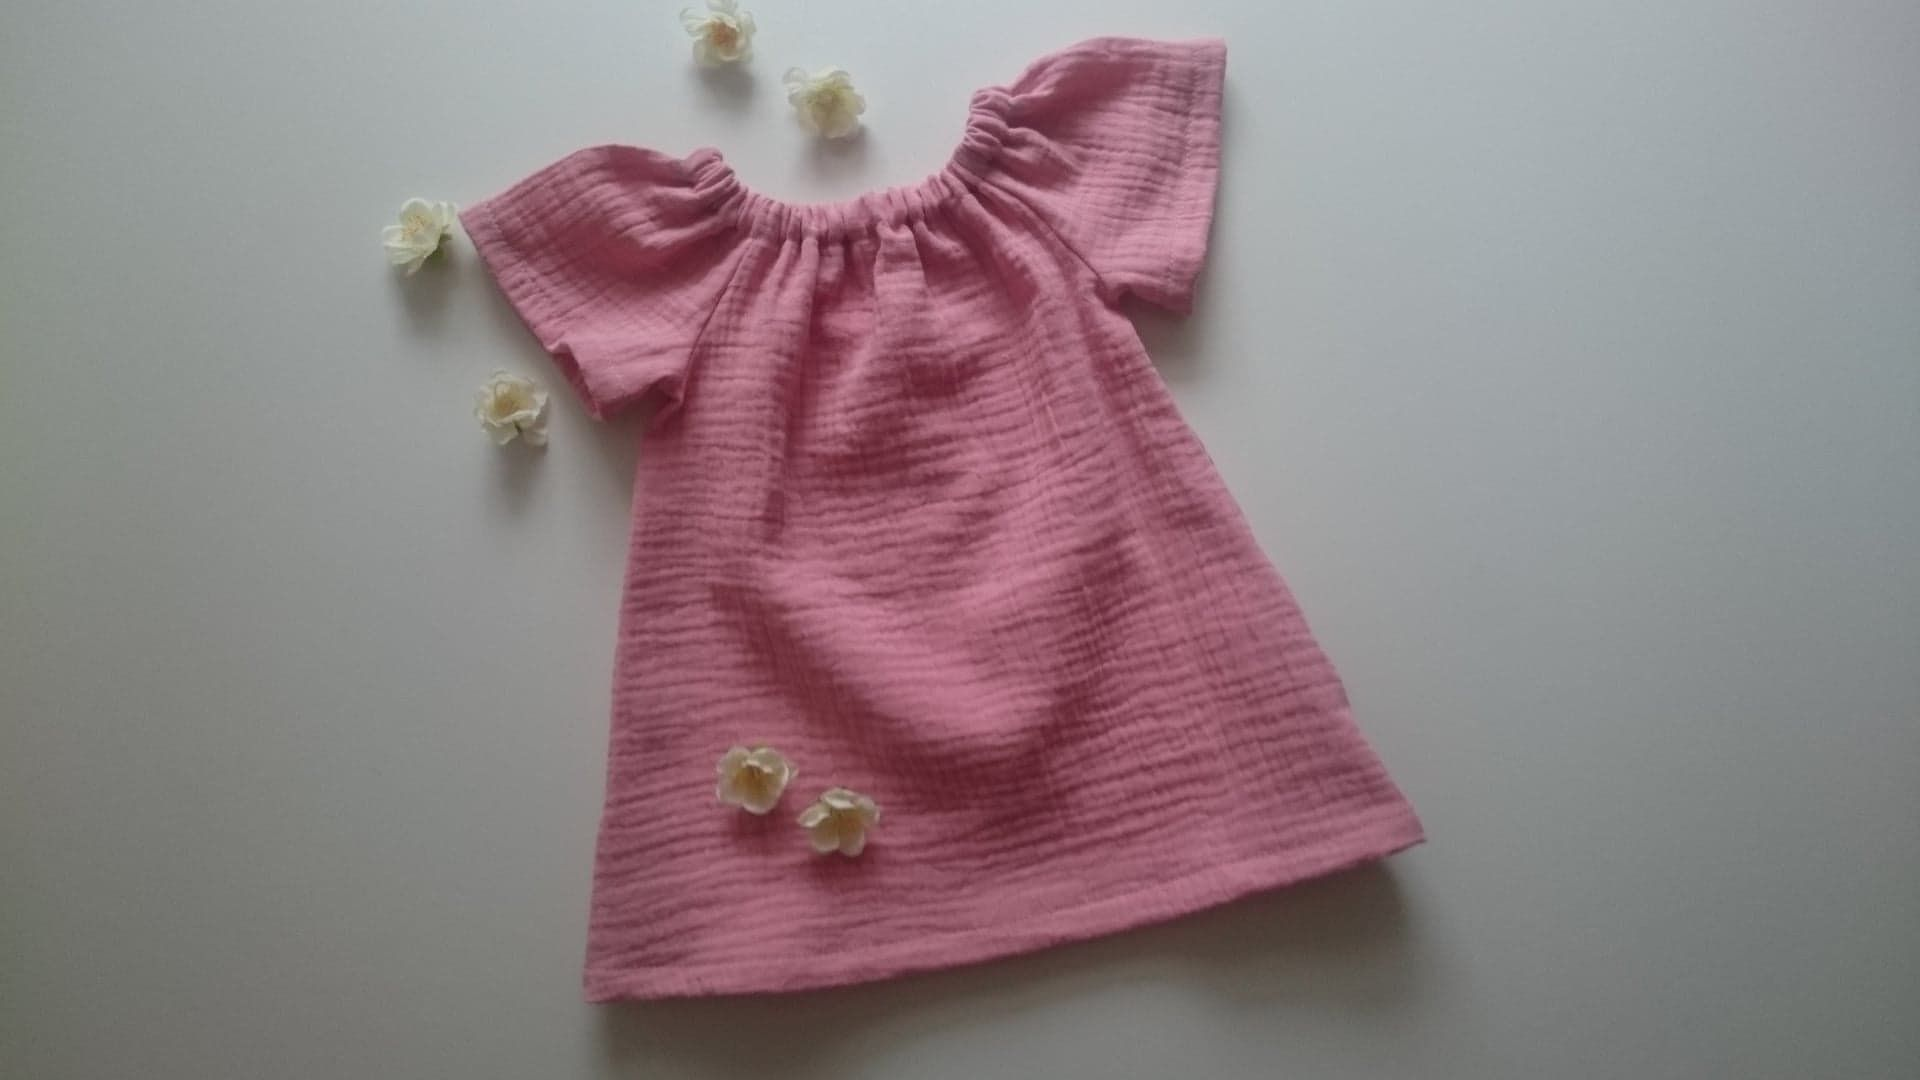 Tunika Musselin Bluse Baby Kind Musselintunika Babytunika Etsy Summer Dresses Fashion Dresses